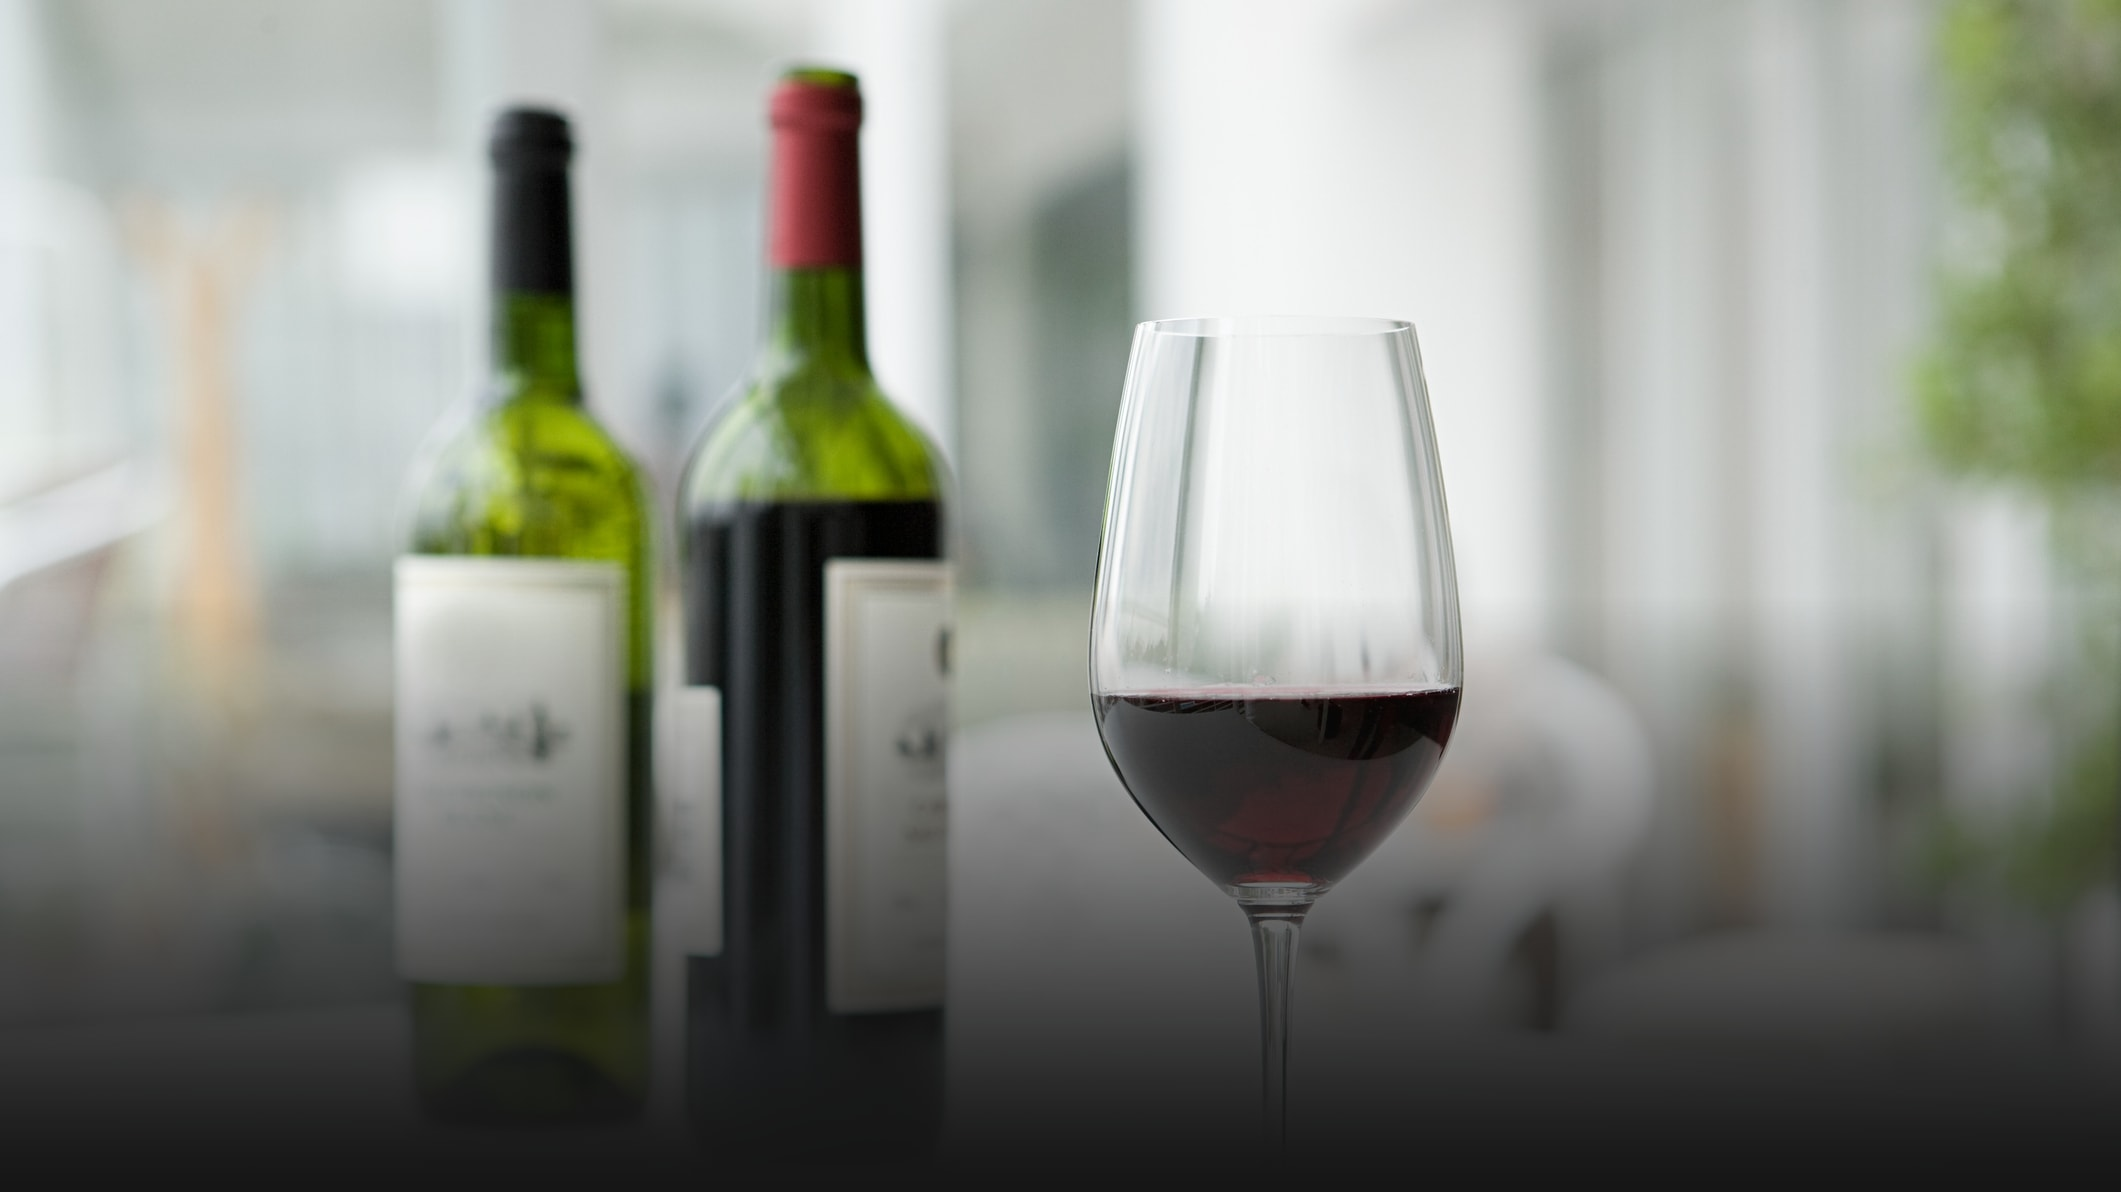 The Best Way to Quickly Aerate Wine